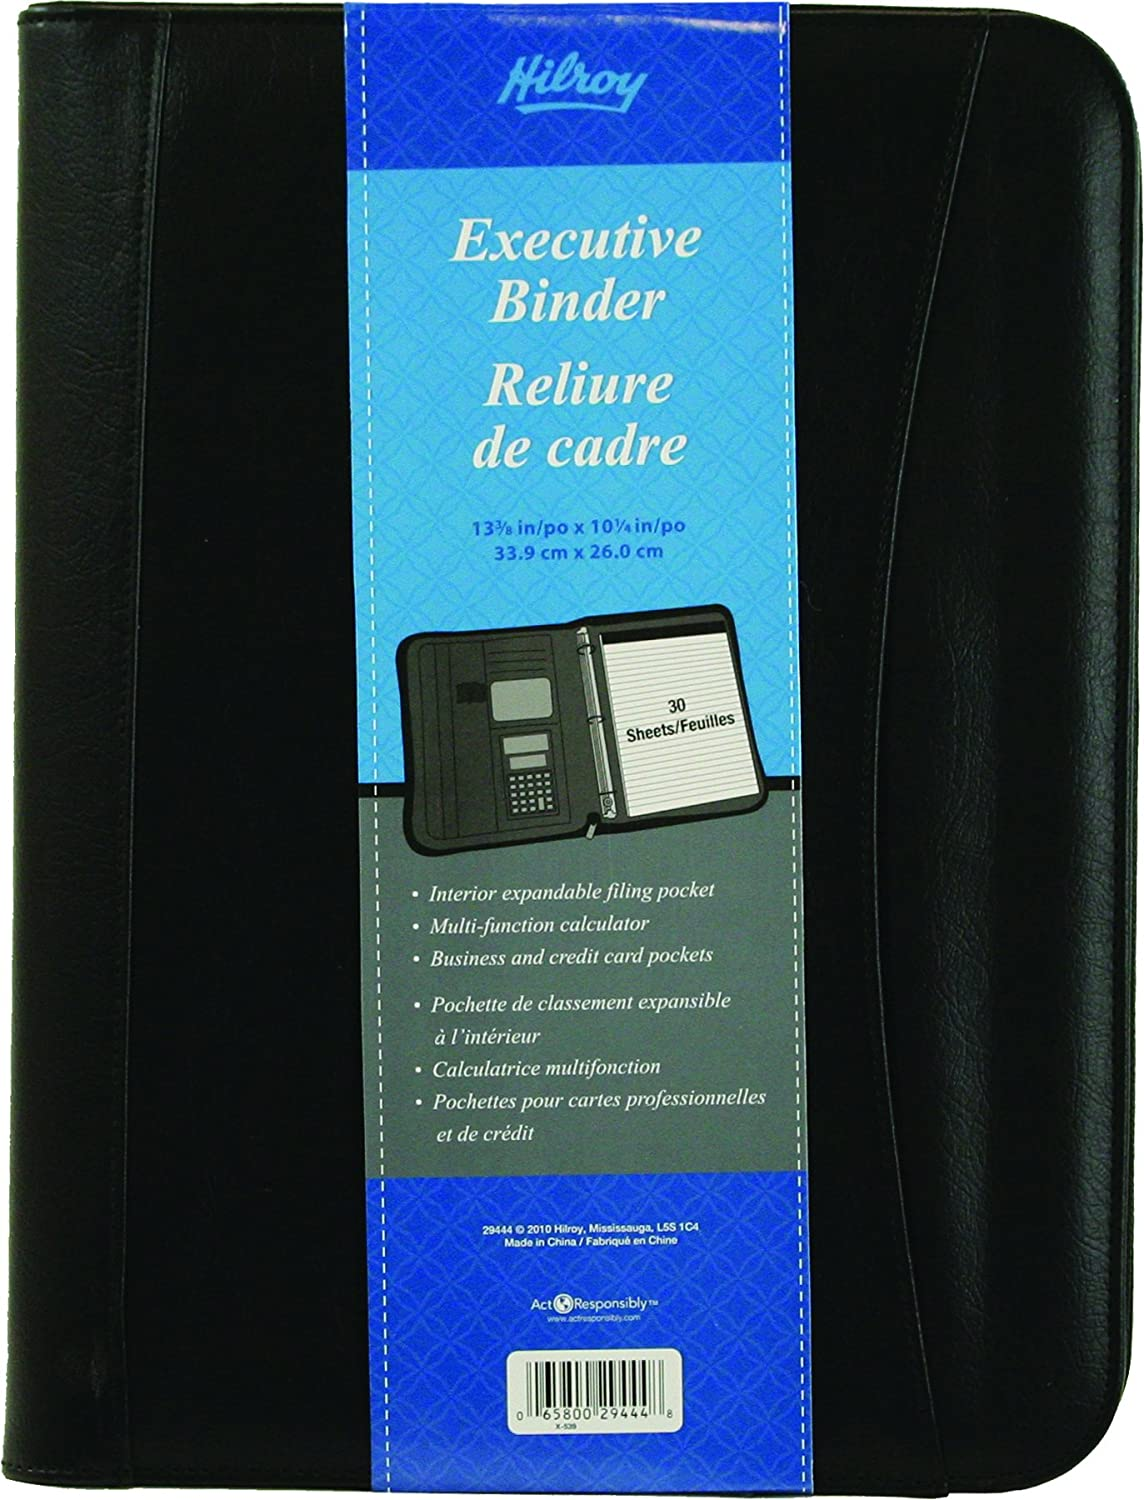 Hilroy 1 Inch Executive Binder, 10-1/4 X 13-3/8 Inches, Black (29444)